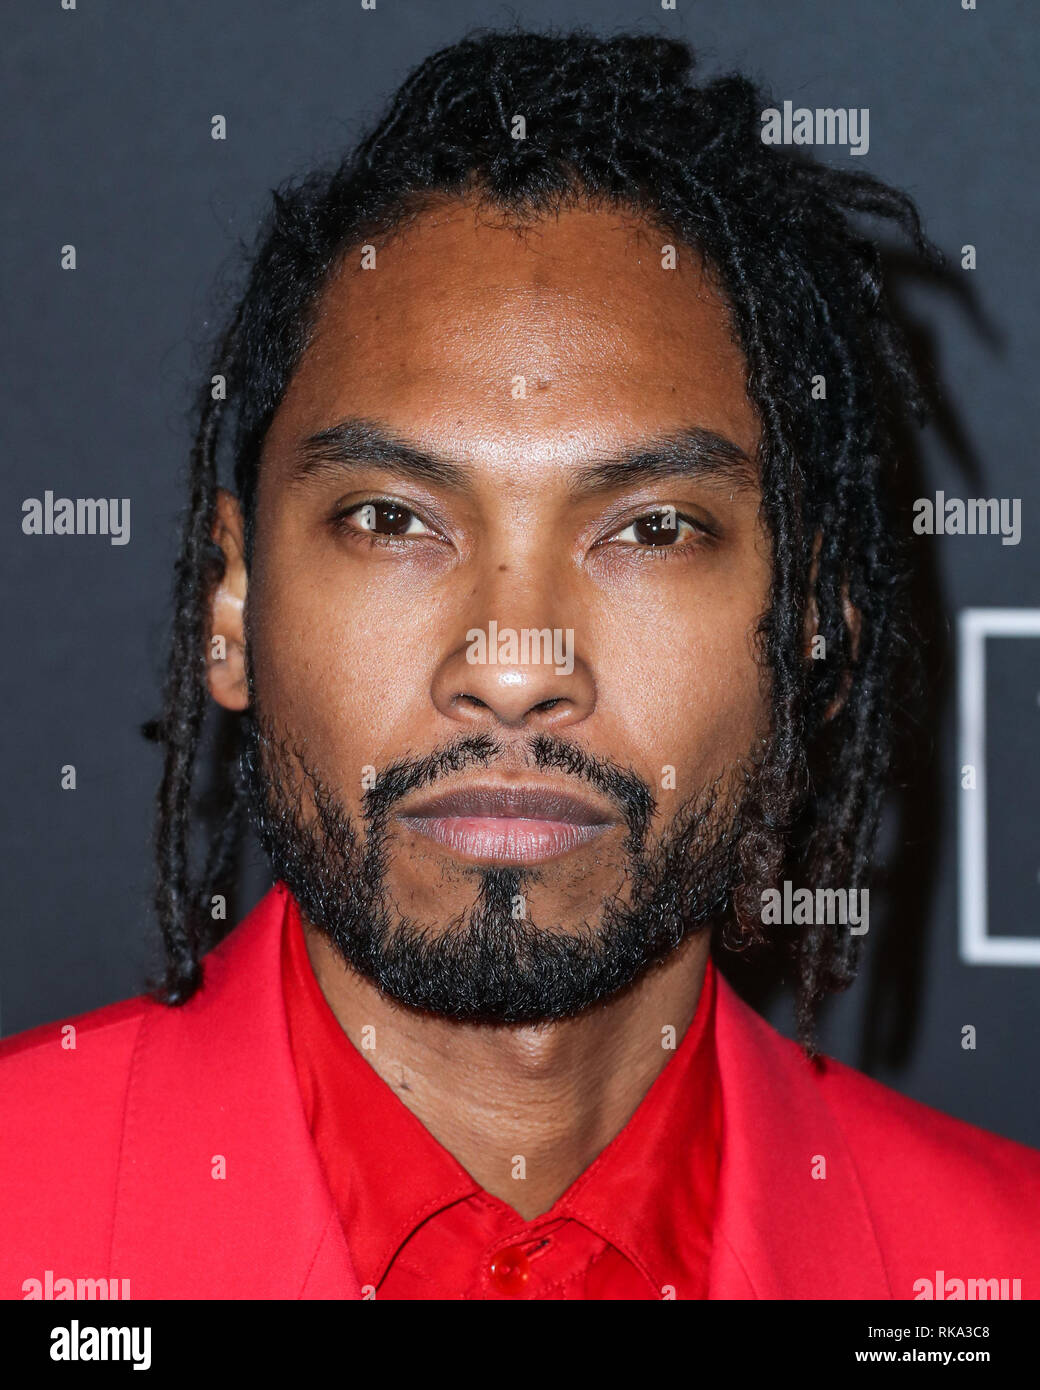 California, USA. 9th Feb 2019.  Singer Miguel arrives at The Recording Academy And Clive Davis' 2019 Pre-GRAMMY Gala held at The Beverly Hilton Hotel on February 9, 2019 in Beverly Hills, Los Angeles, California, United States. (Photo by Xavier Collin/Image Press Agency) Credit: Image Press Agency/Alamy Live News Stock Photo